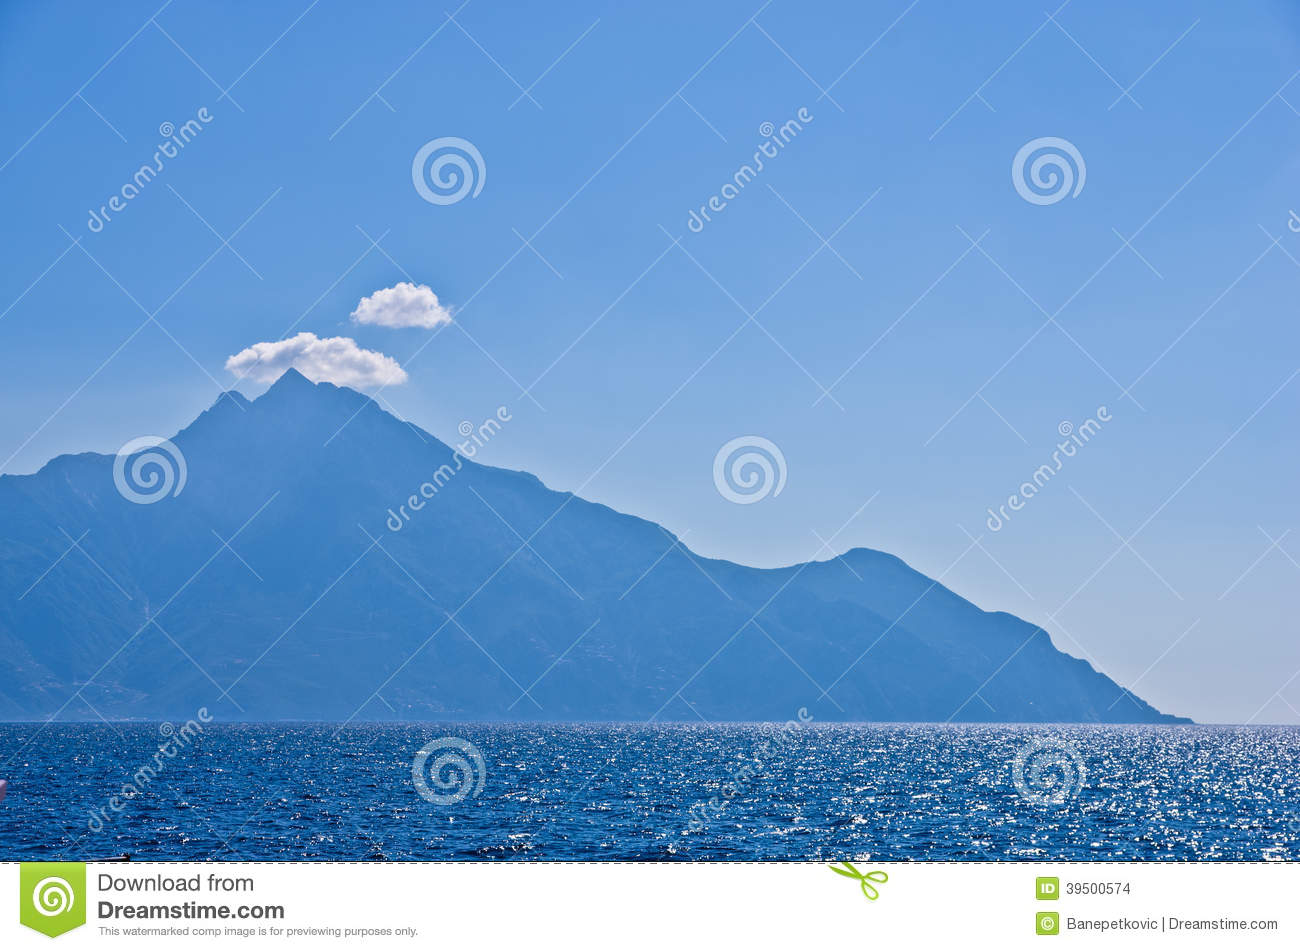 Aegean sea, silhouette of the holy mountains Athos and a small cloud above the mountain top